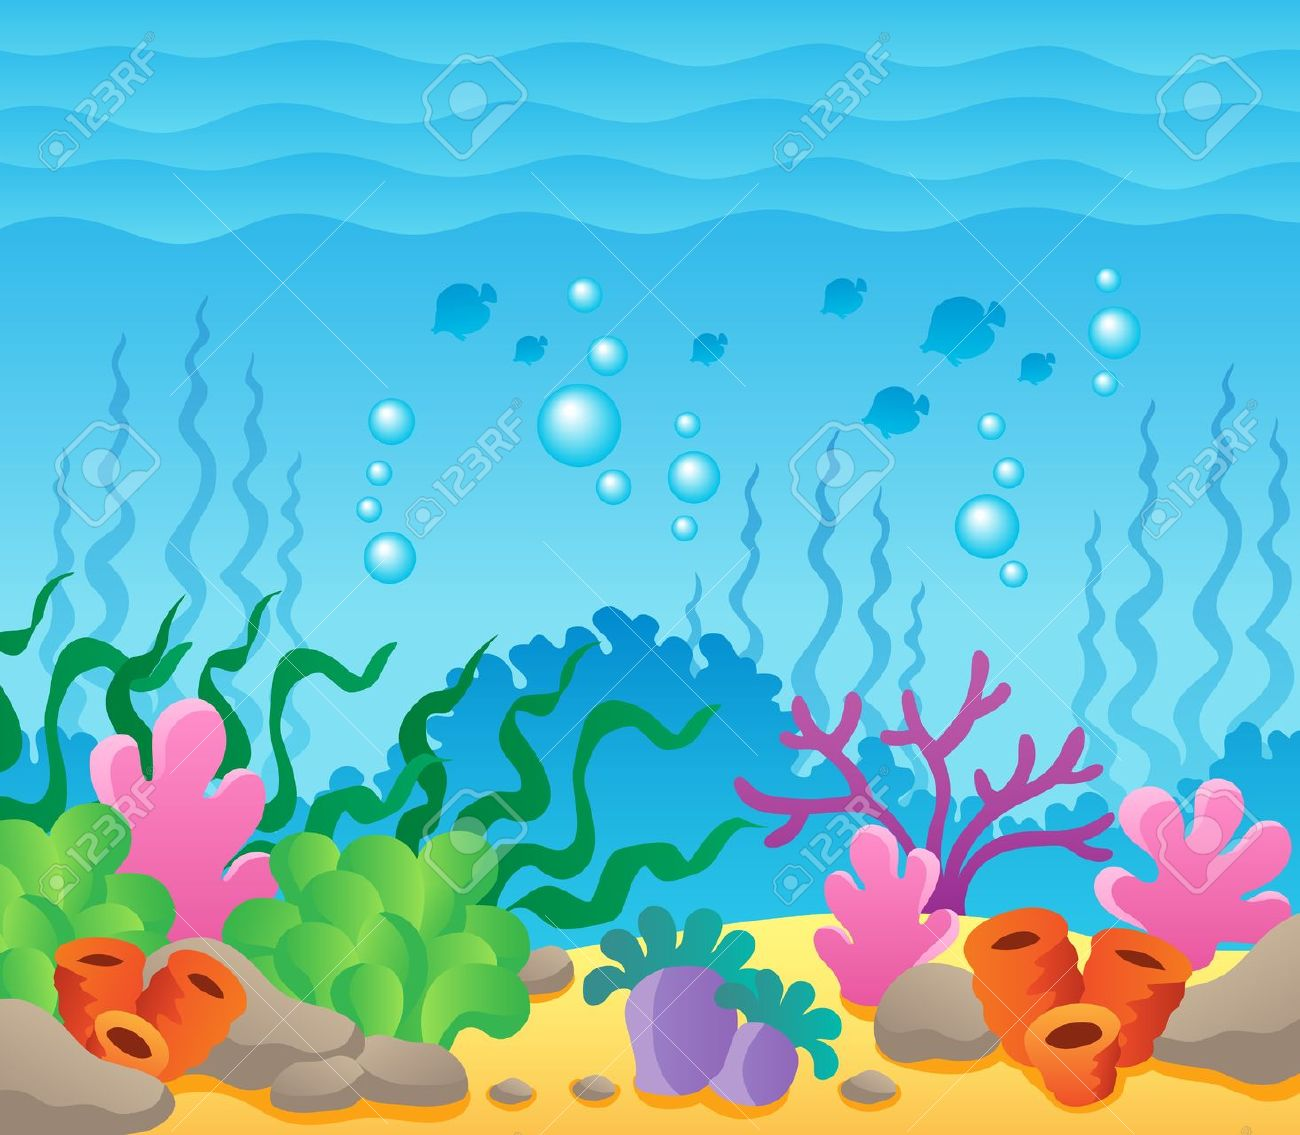 banner royalty free Free sea cliparts download. Ocean clipart